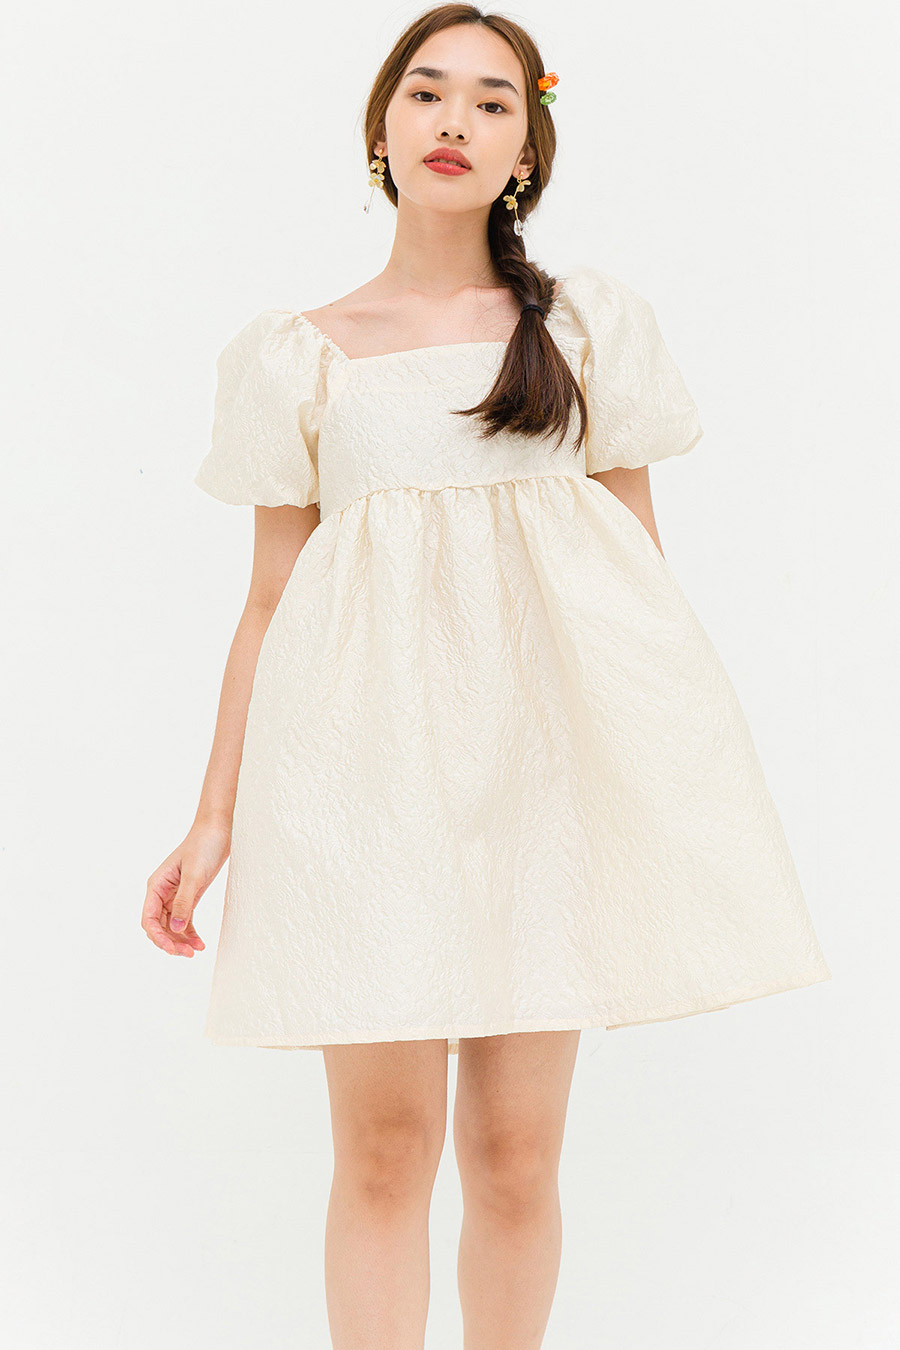 *RESTOCKED* HOFFMAN DRESS - IVORY